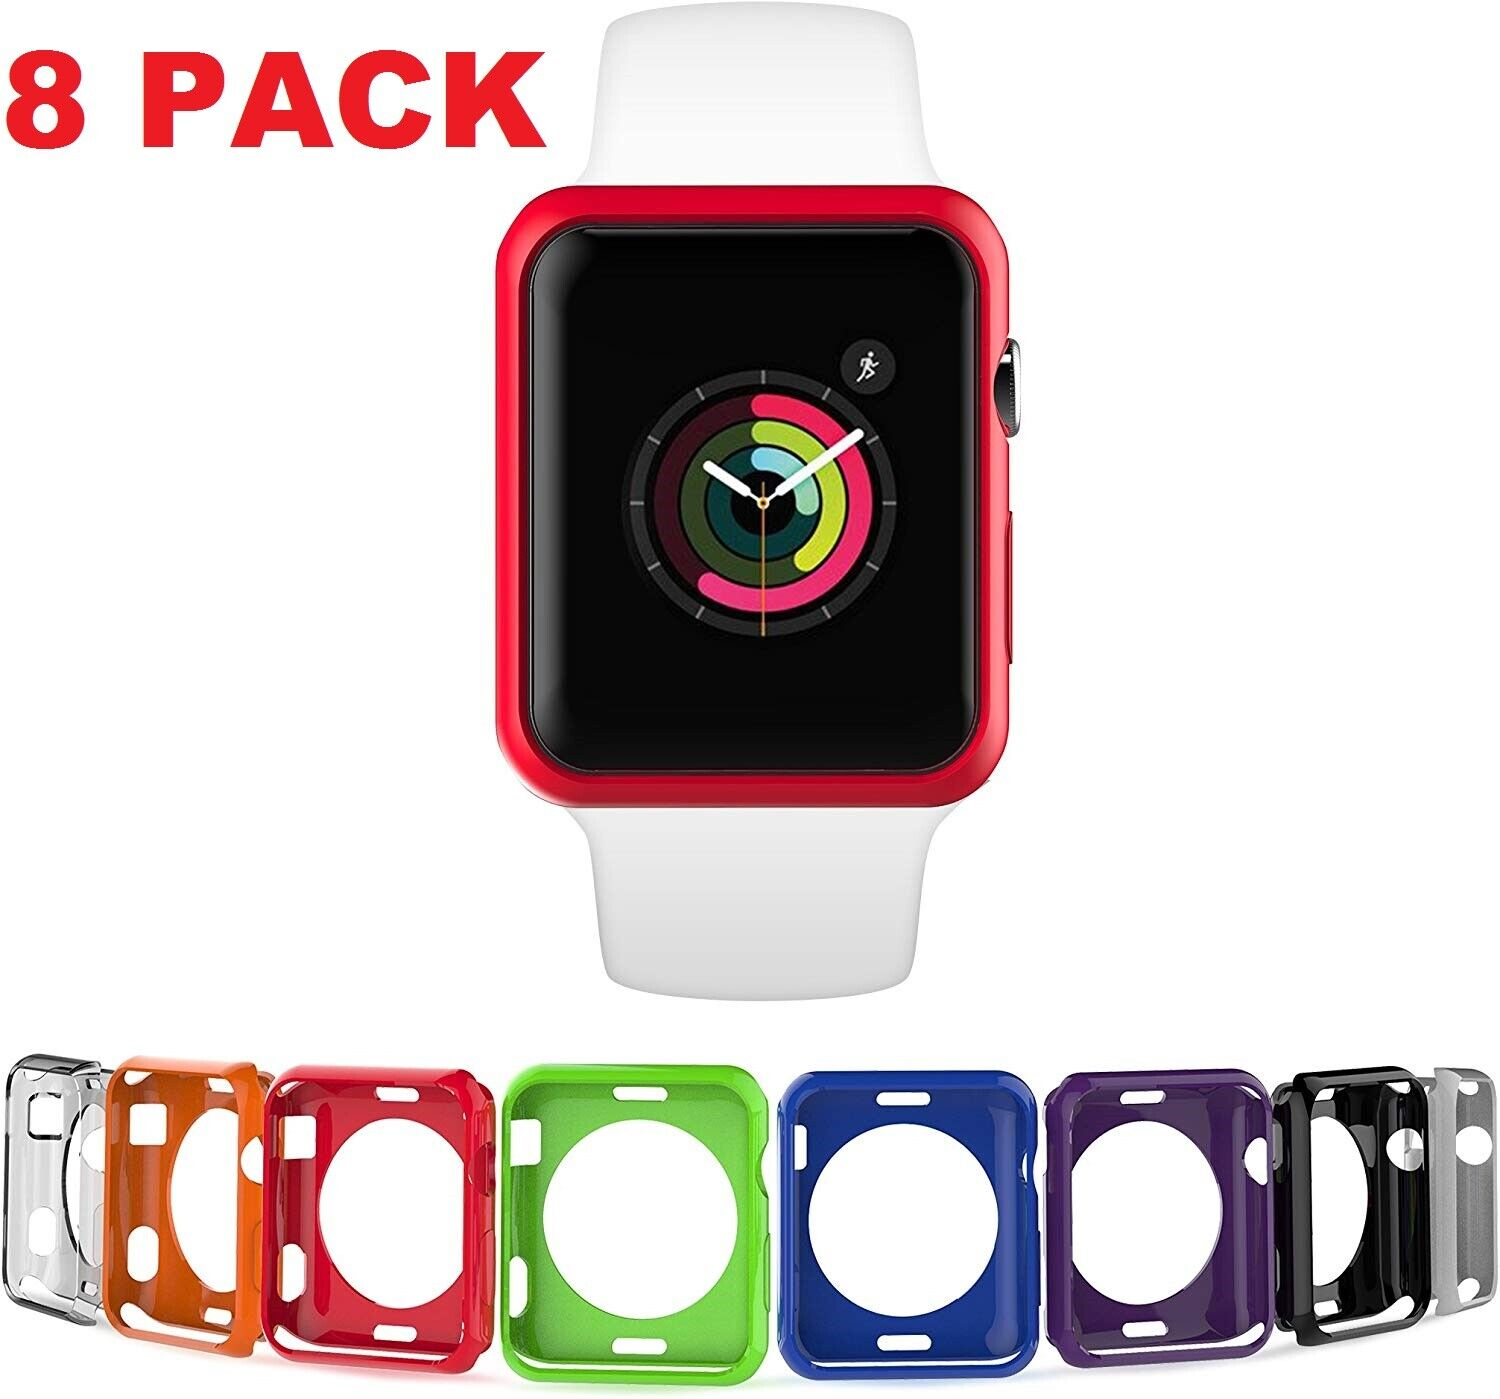 8 Color Pack Cover Protective Case for Apple Watch 38/40/42/44mm Series 4/3/2/1 Cell Phones & Accessories